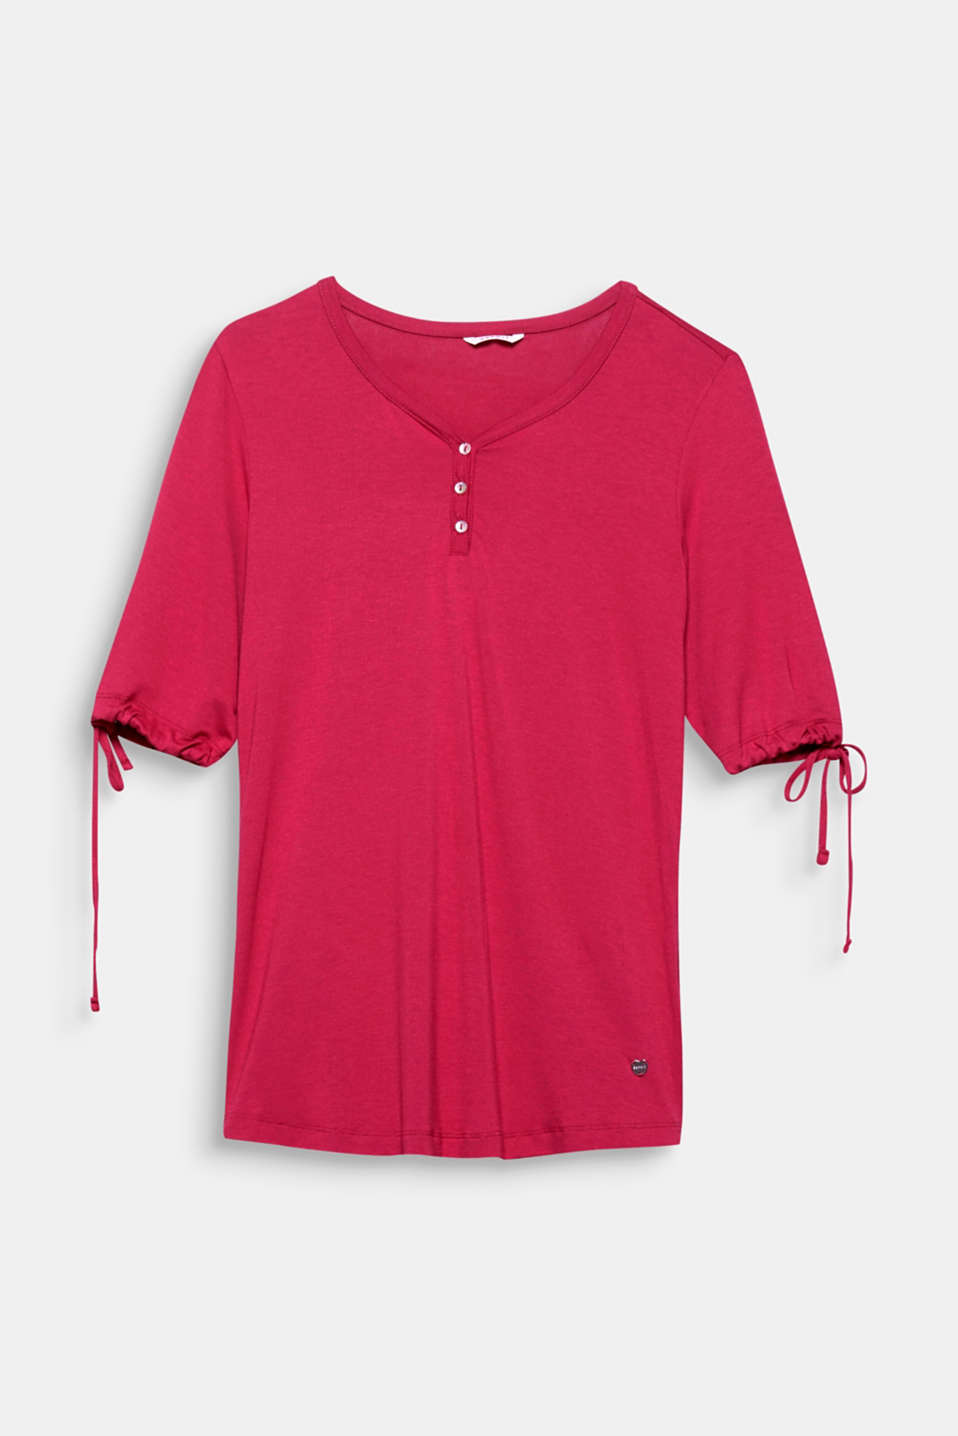 The soft jersey fabric and the comfortable style make this shirt a popular partner for relaxed hours.